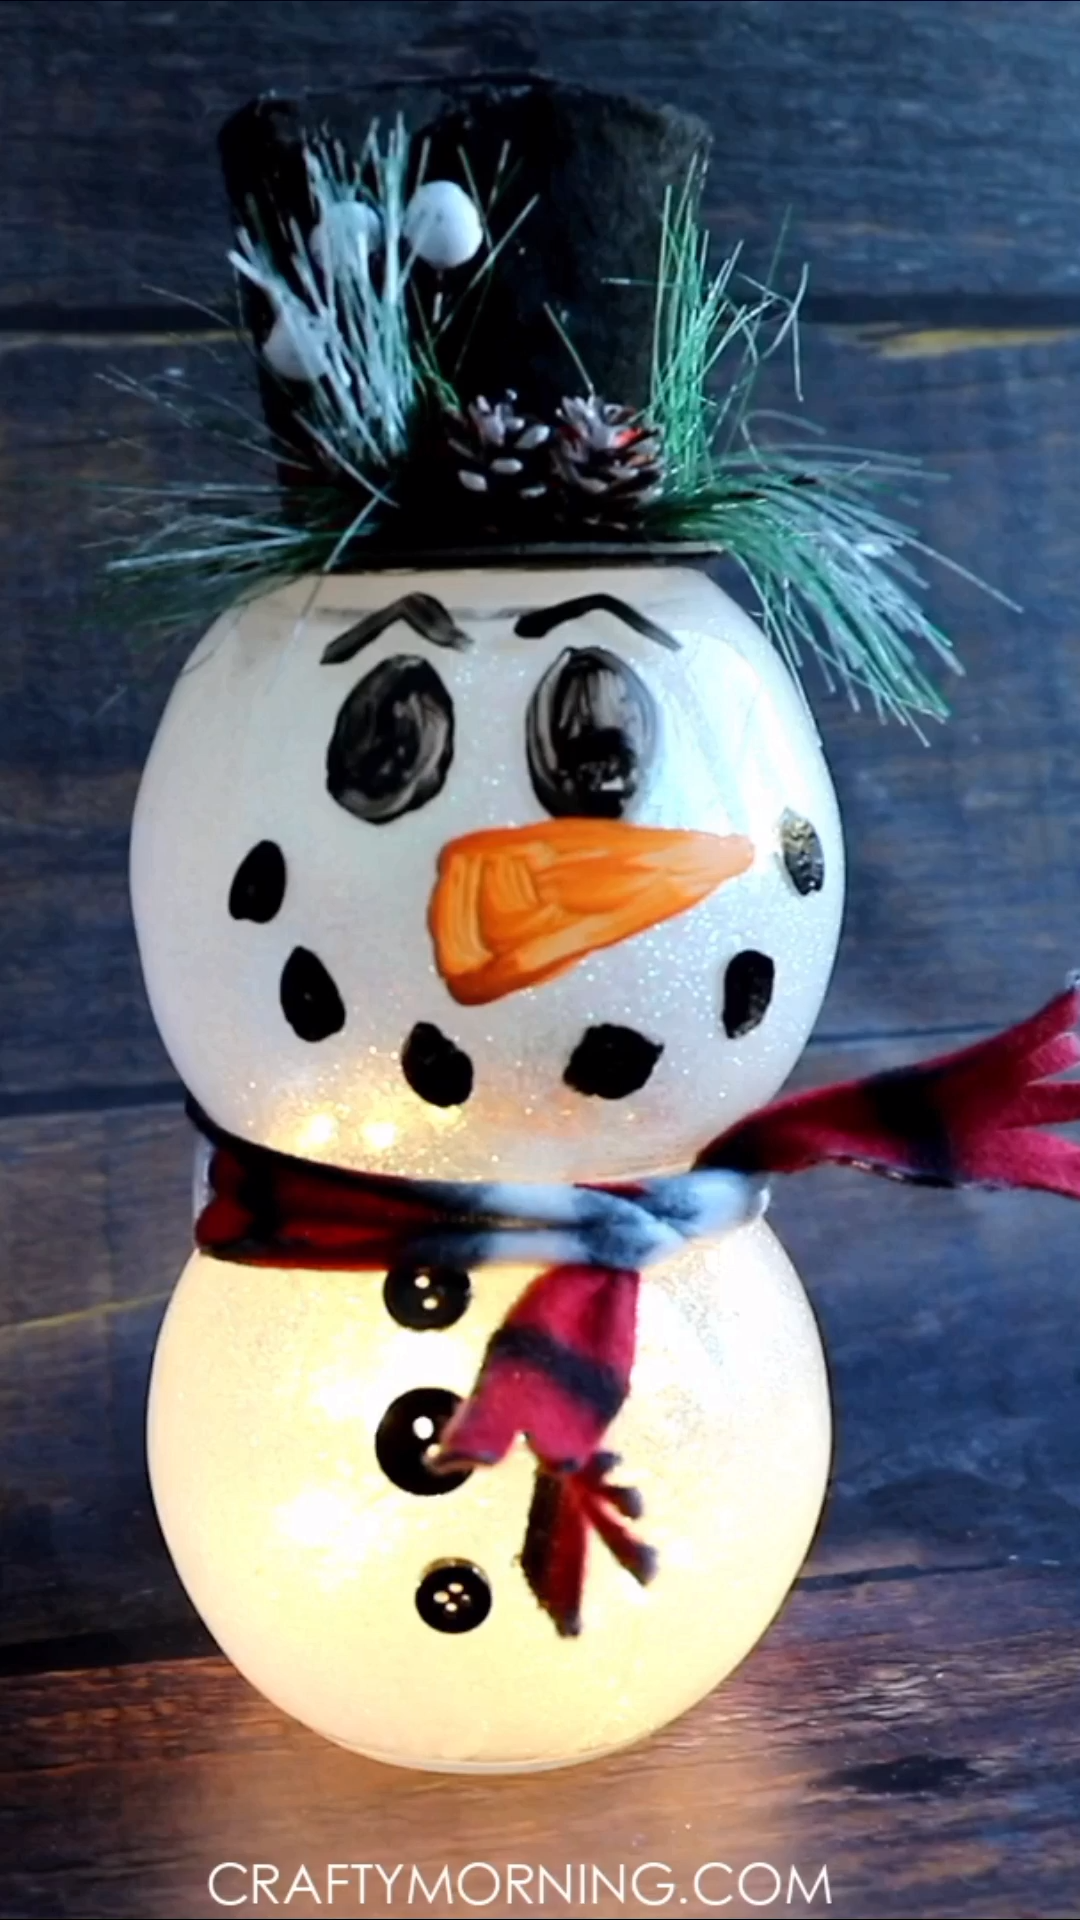 Lighted Fish Bowl Snowman- Dollar store craft to make! Christmas DIY project, craft for kids to even make. Love Dollar tree crafts! Xmas, holiday idea for home decor. Lights up!